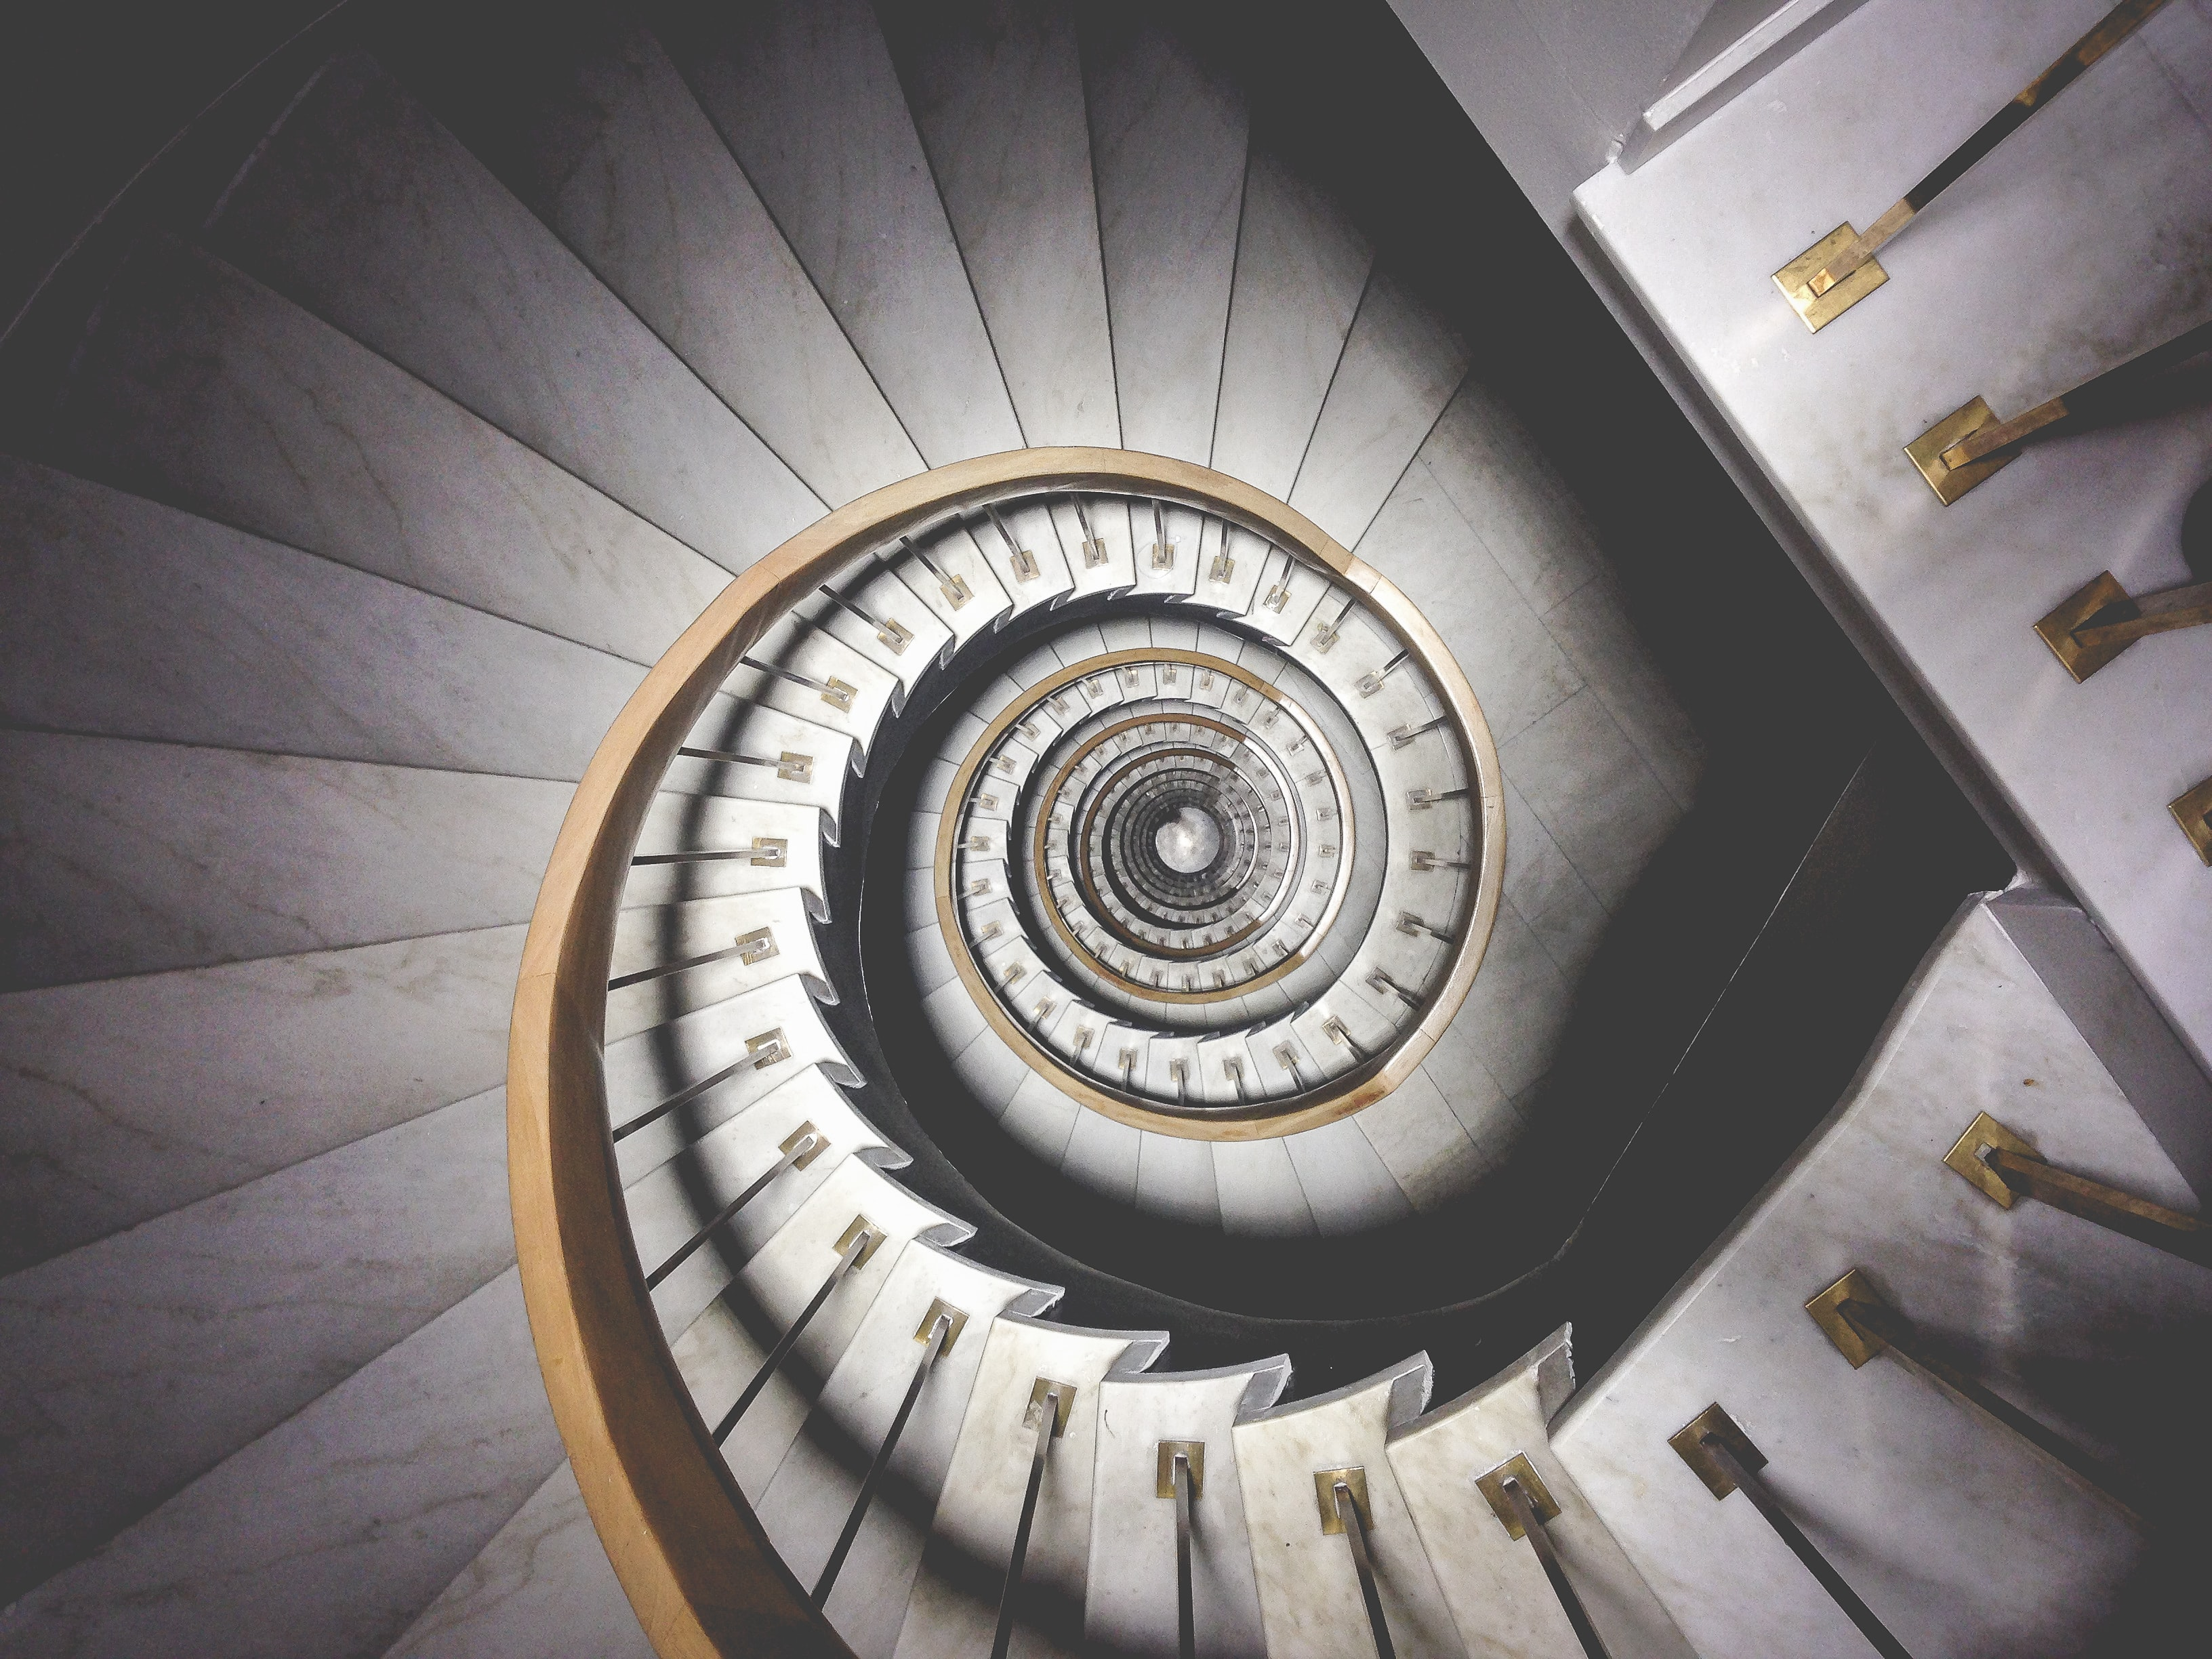 Impressive view down a stairwell with spiral marble stairs